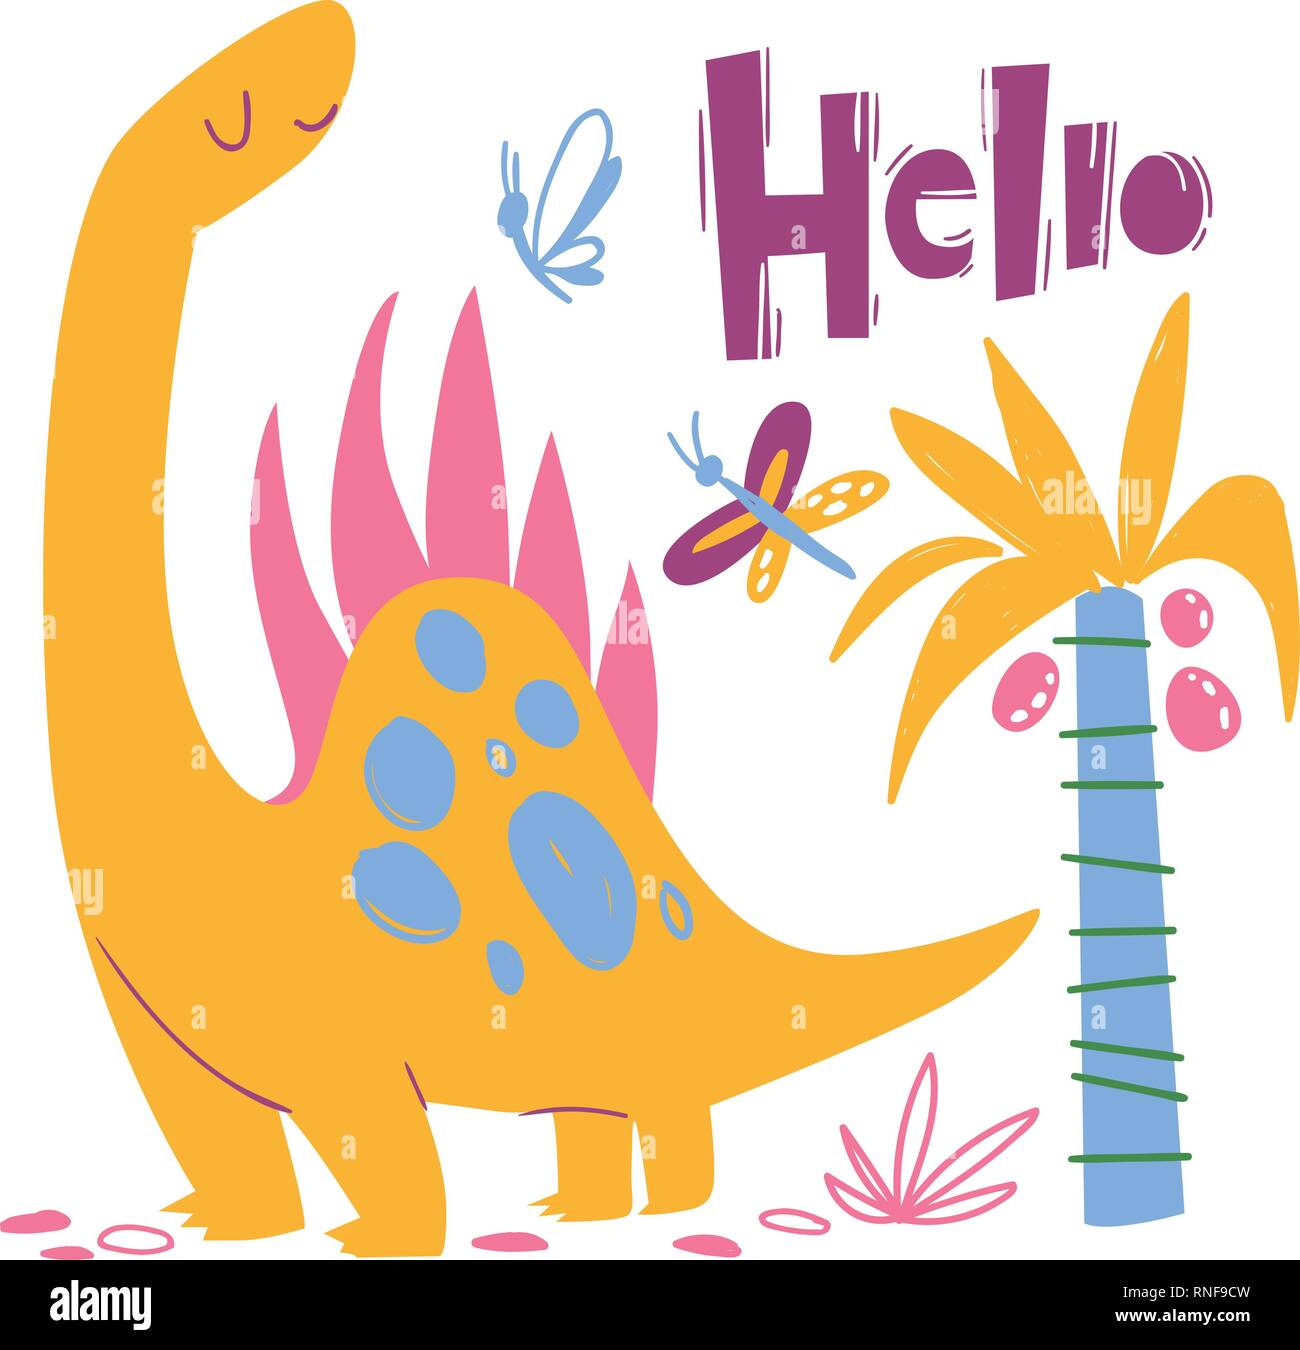 Cool dino poster with funny dinosaur and hello - Stock Image